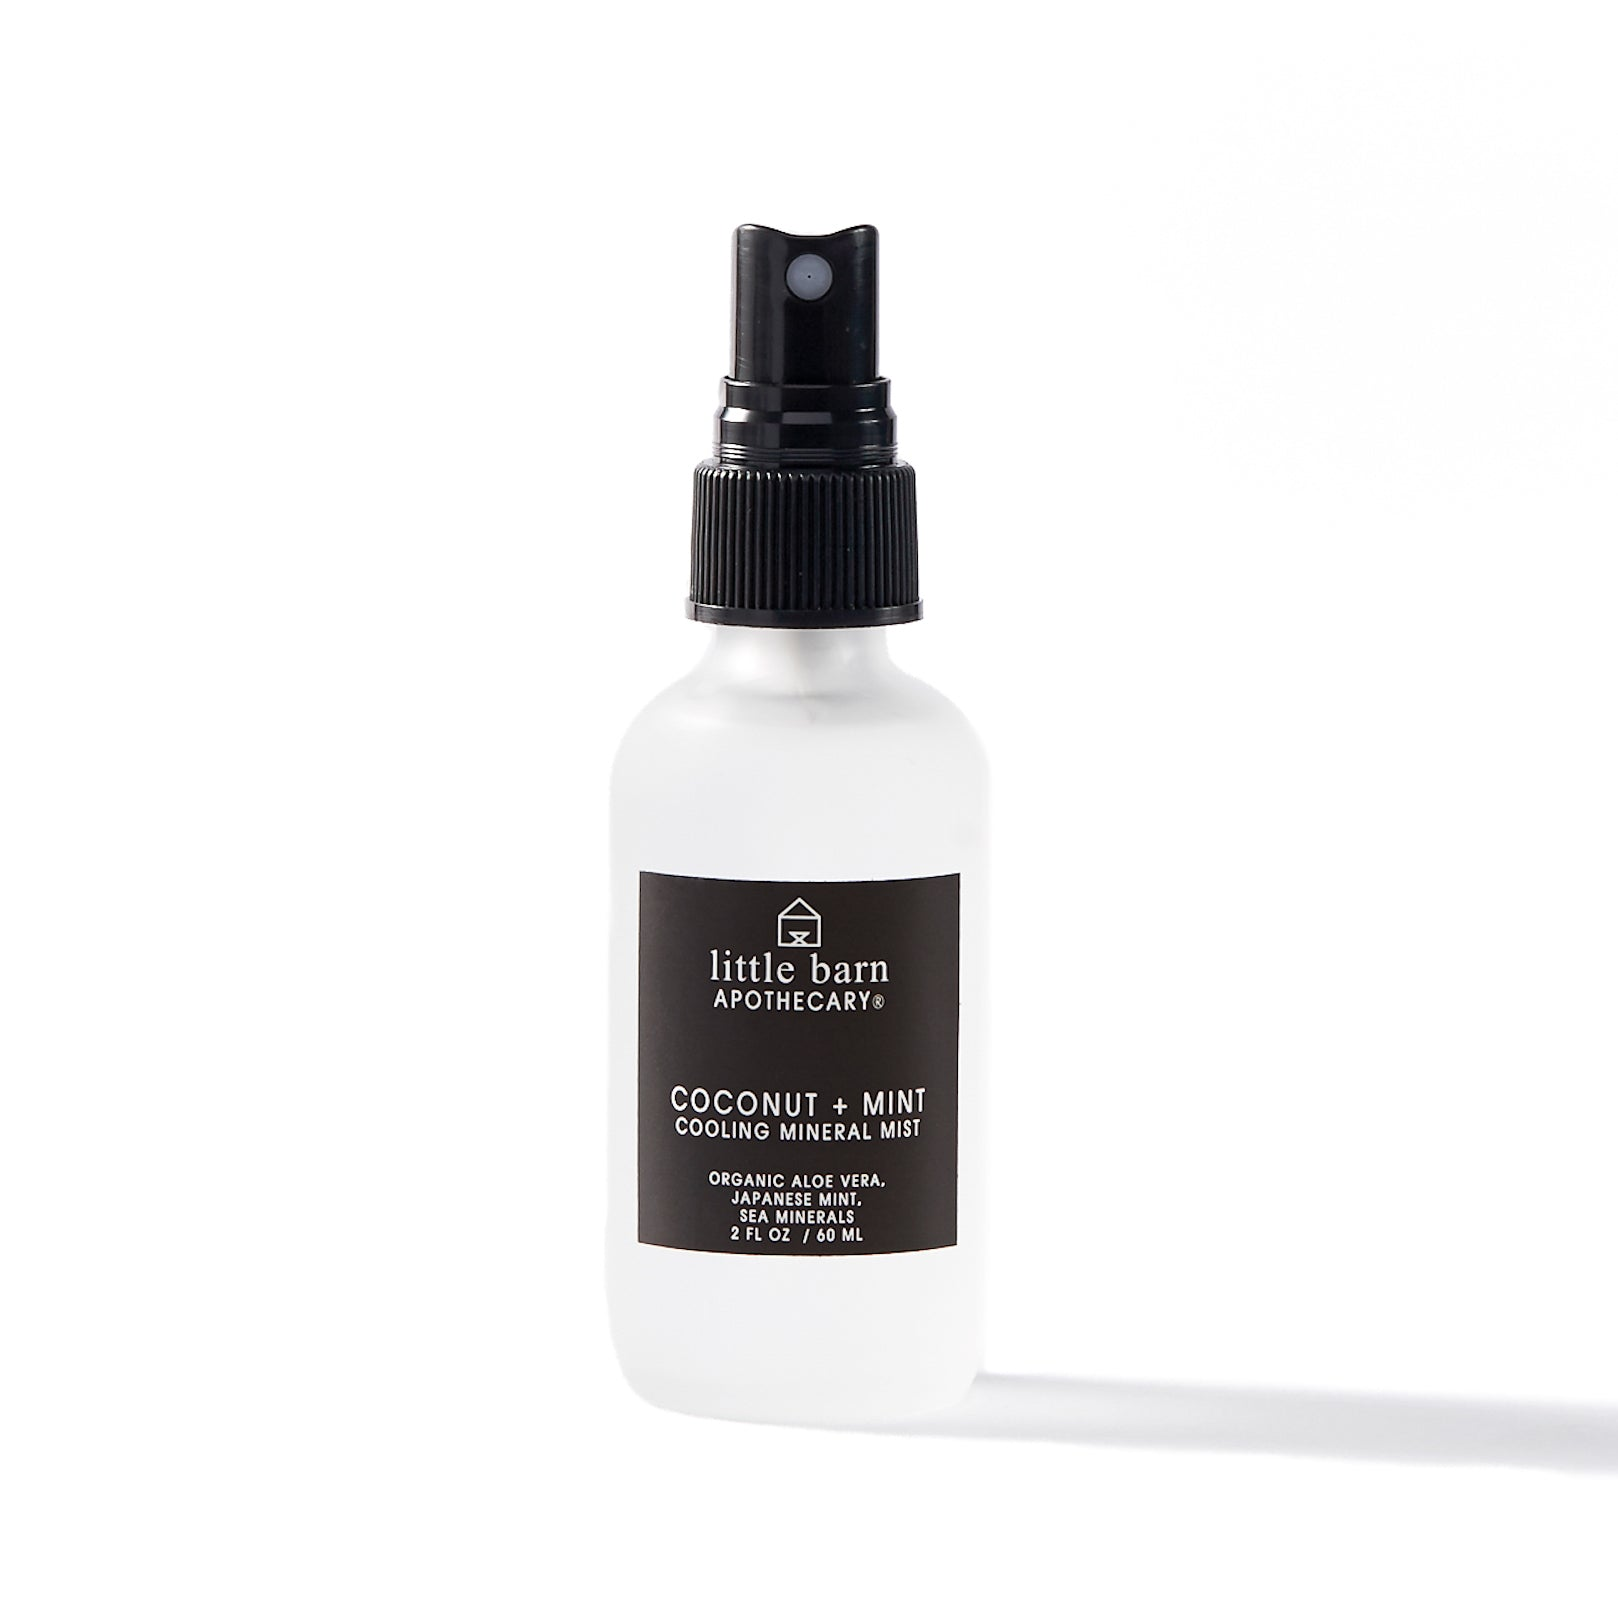 Little Barn Apothecary Coconut + Mint Cooling Mineral Mist